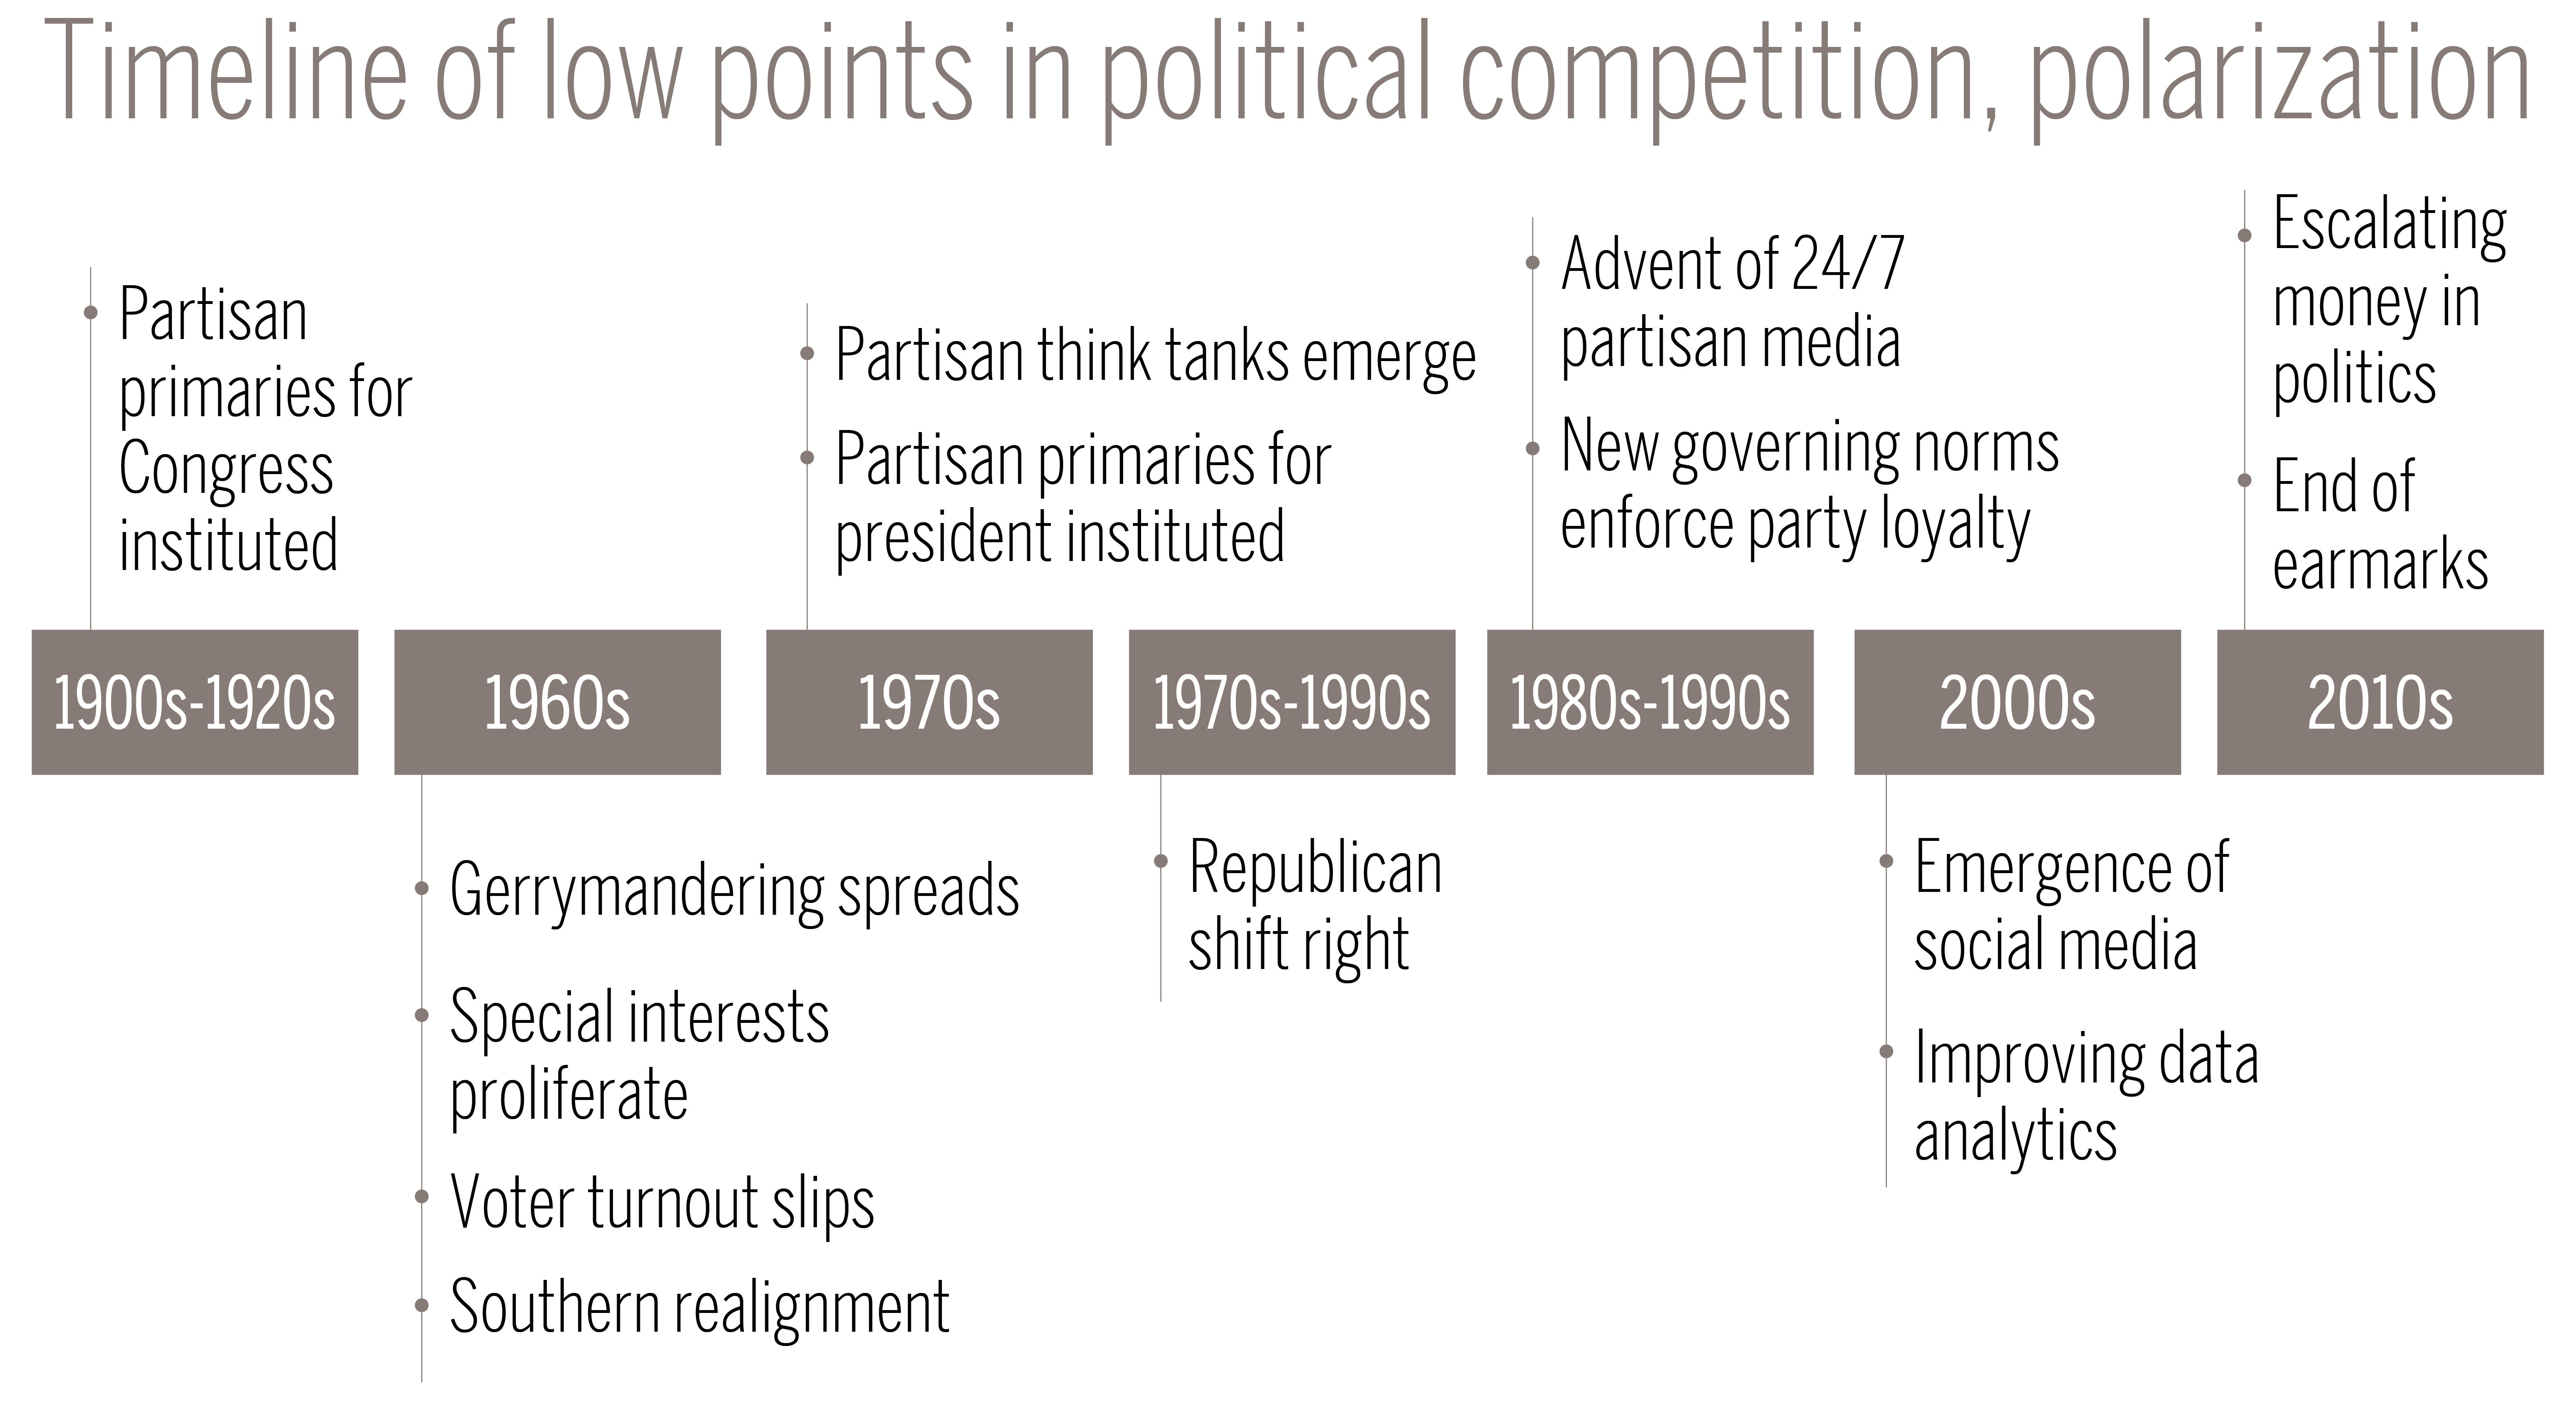 Timeline of low points in political competition, polarization